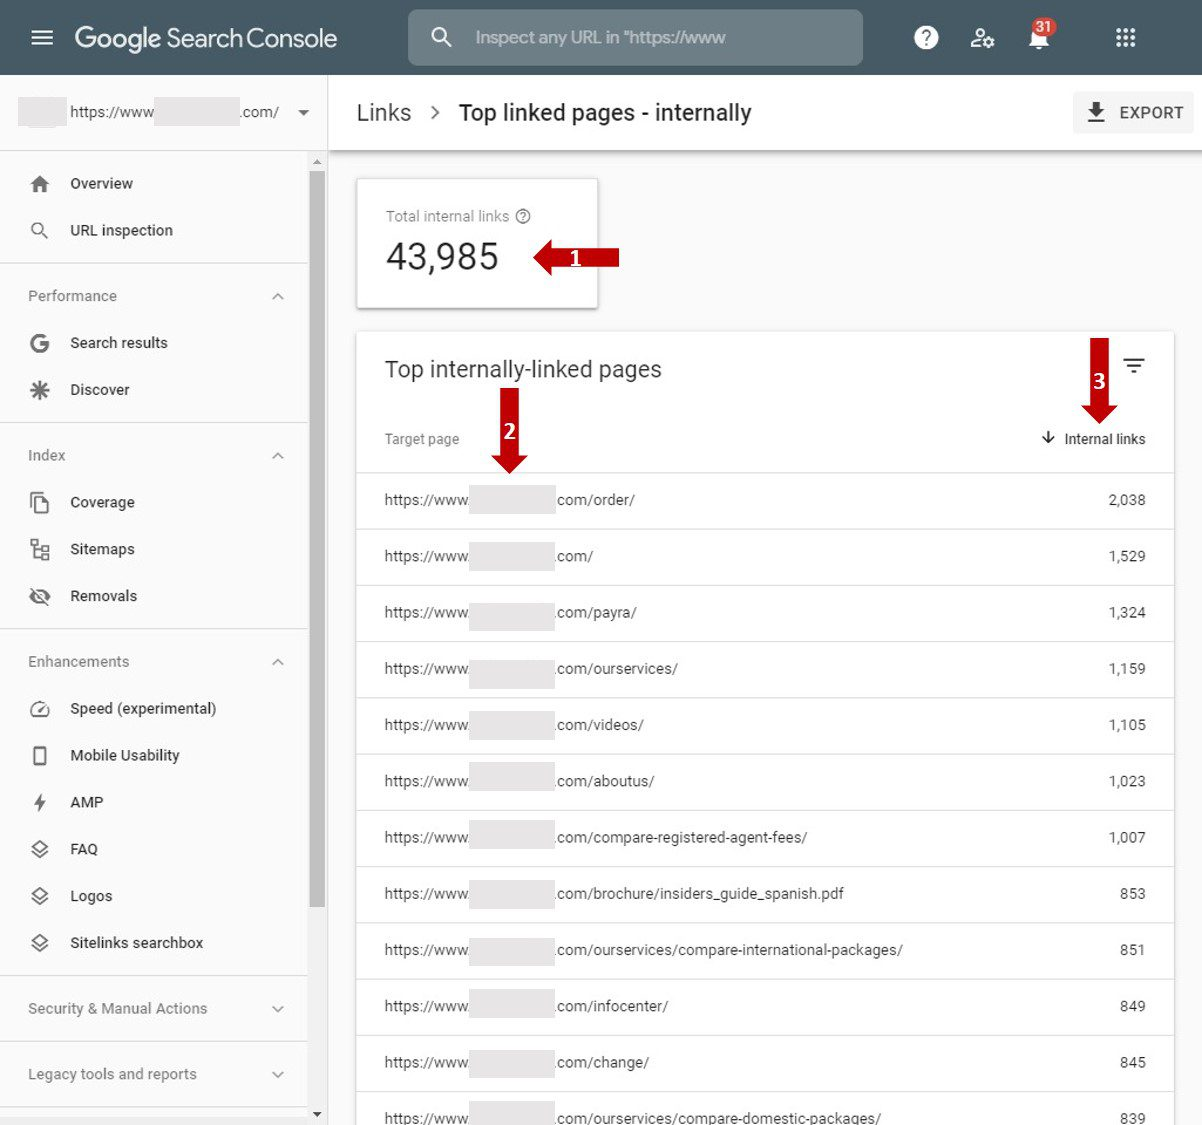 """The """"Top linked pages - internally"""" shows which pages have the most internal links."""